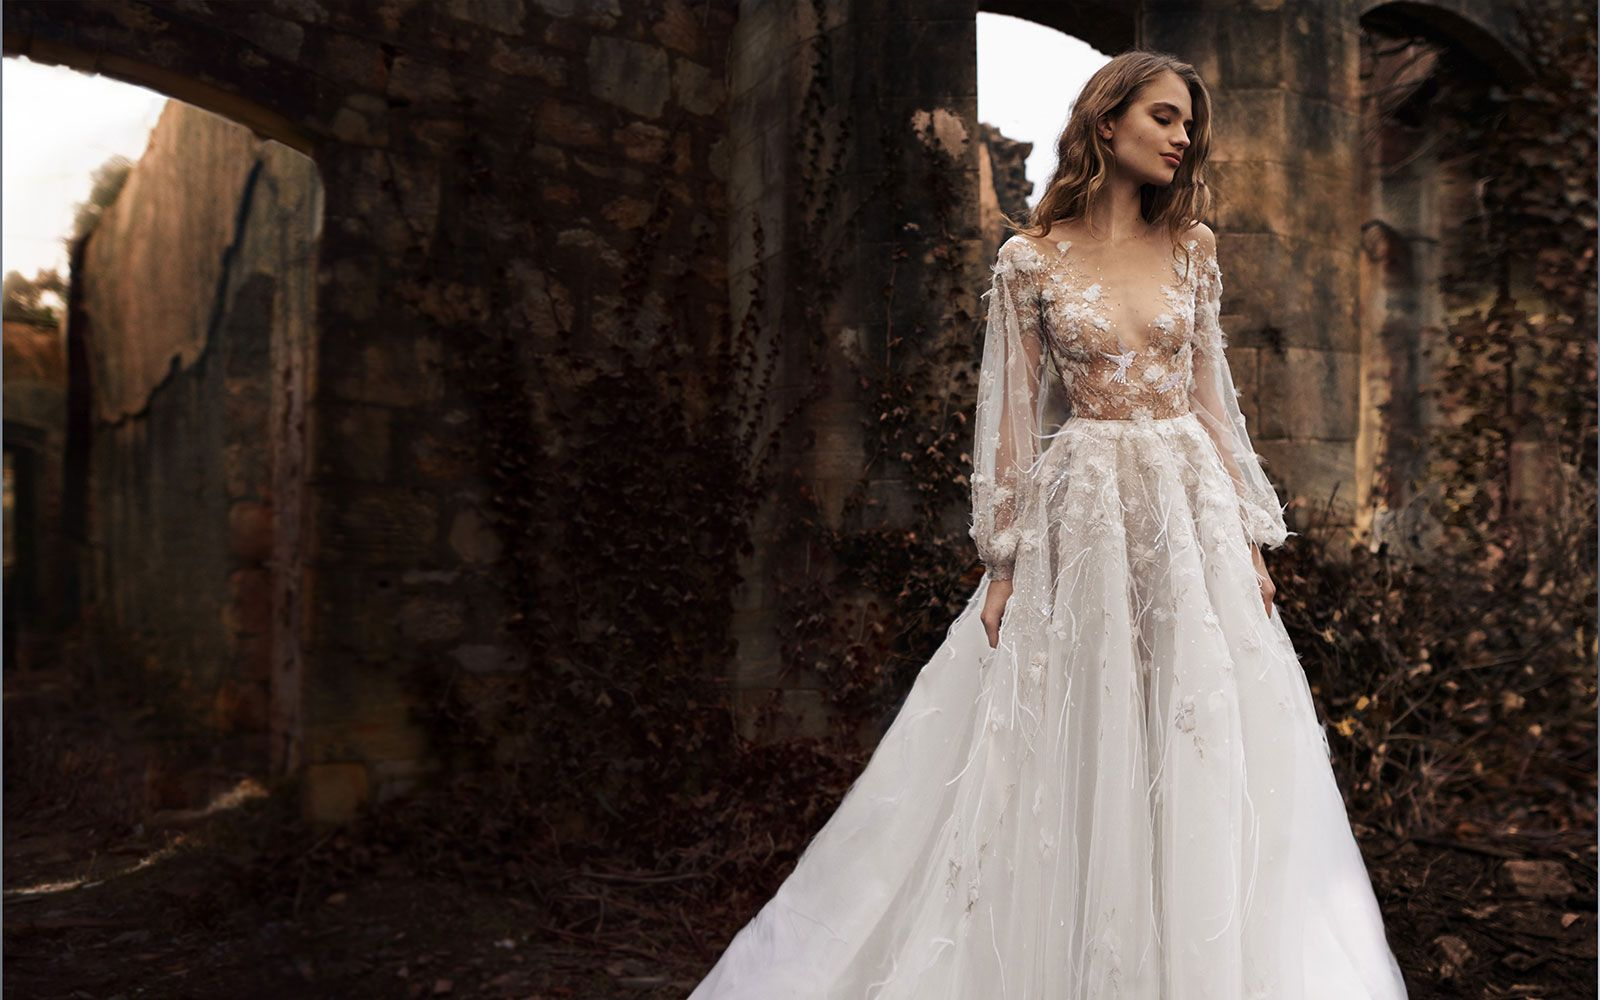 Most revealing wedding dresses ever   SS Couture  Paolo Sebastian  Dresses  Pinterest  Paolo